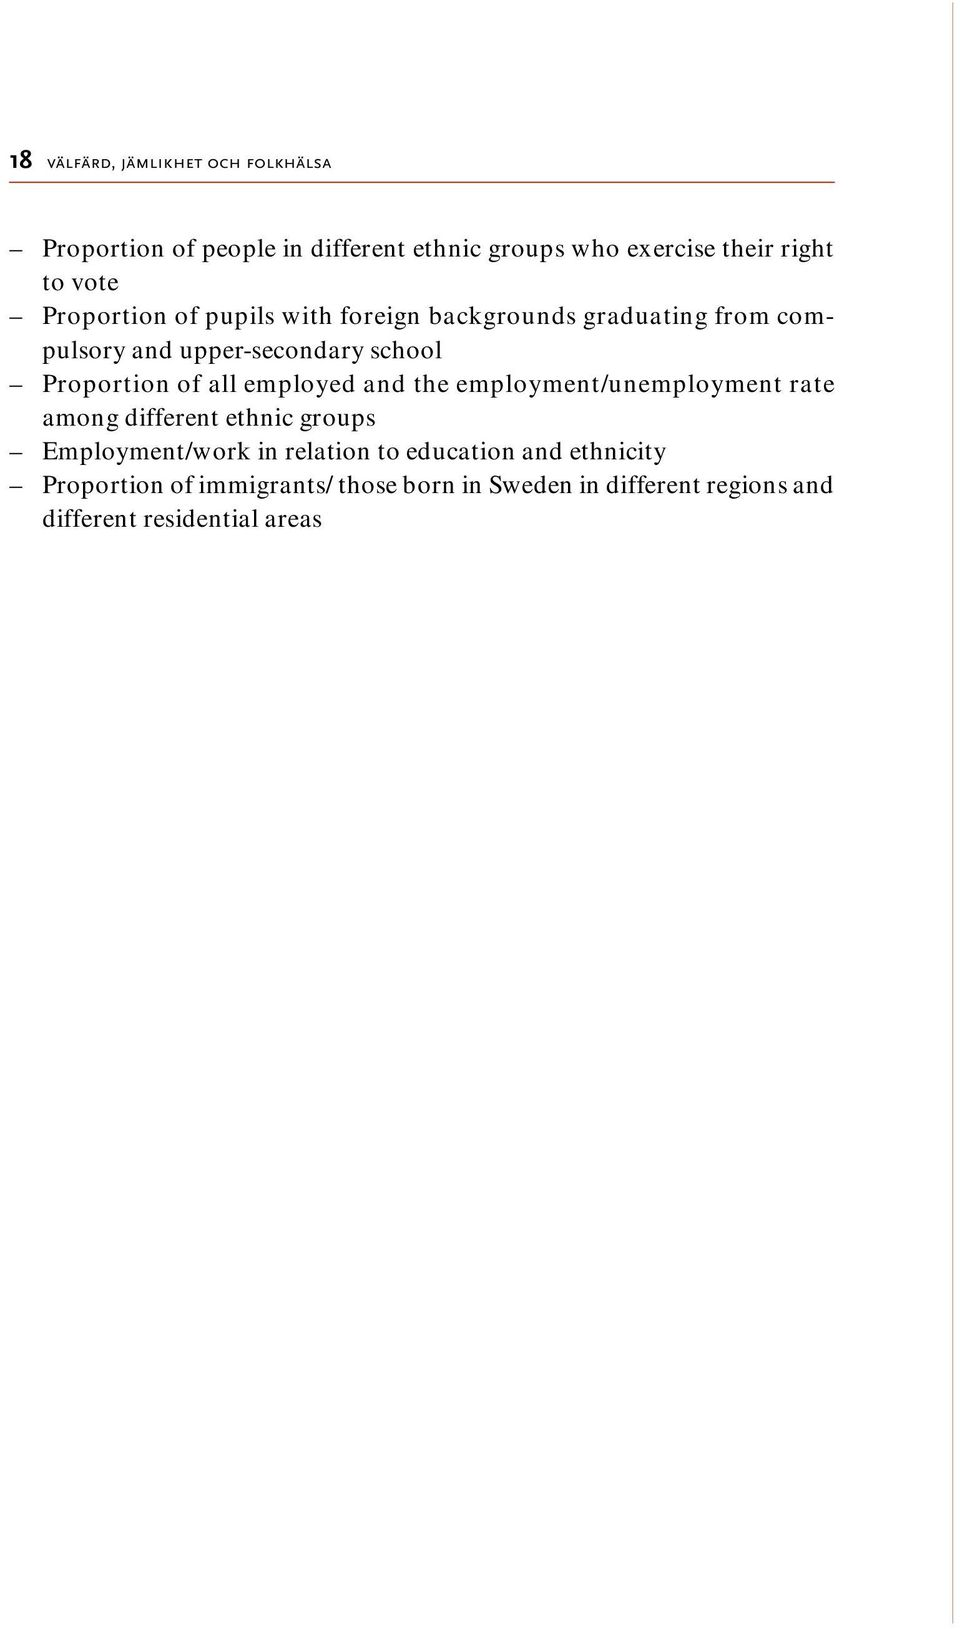 all employed and the employment/unemployment rate among different ethnic groups Employment/work in relation to